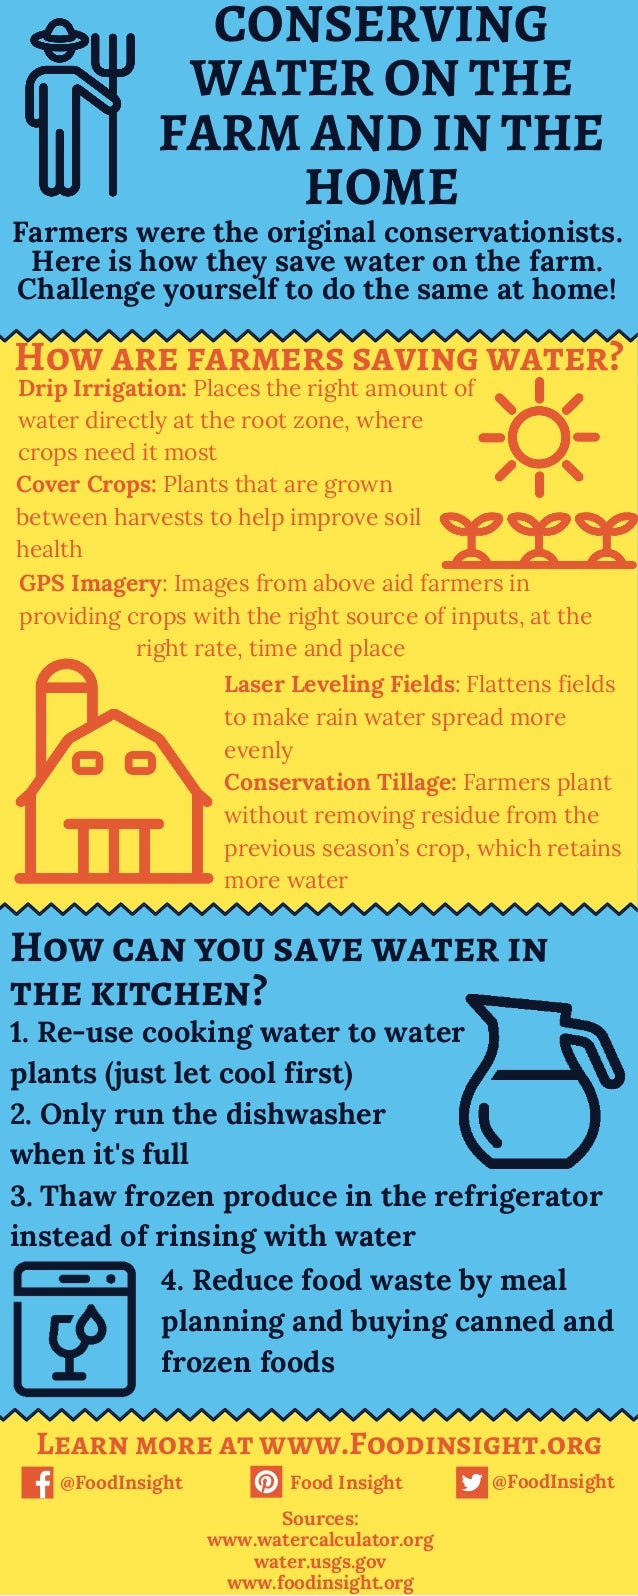 Conserving Water on the Farm and in the Home